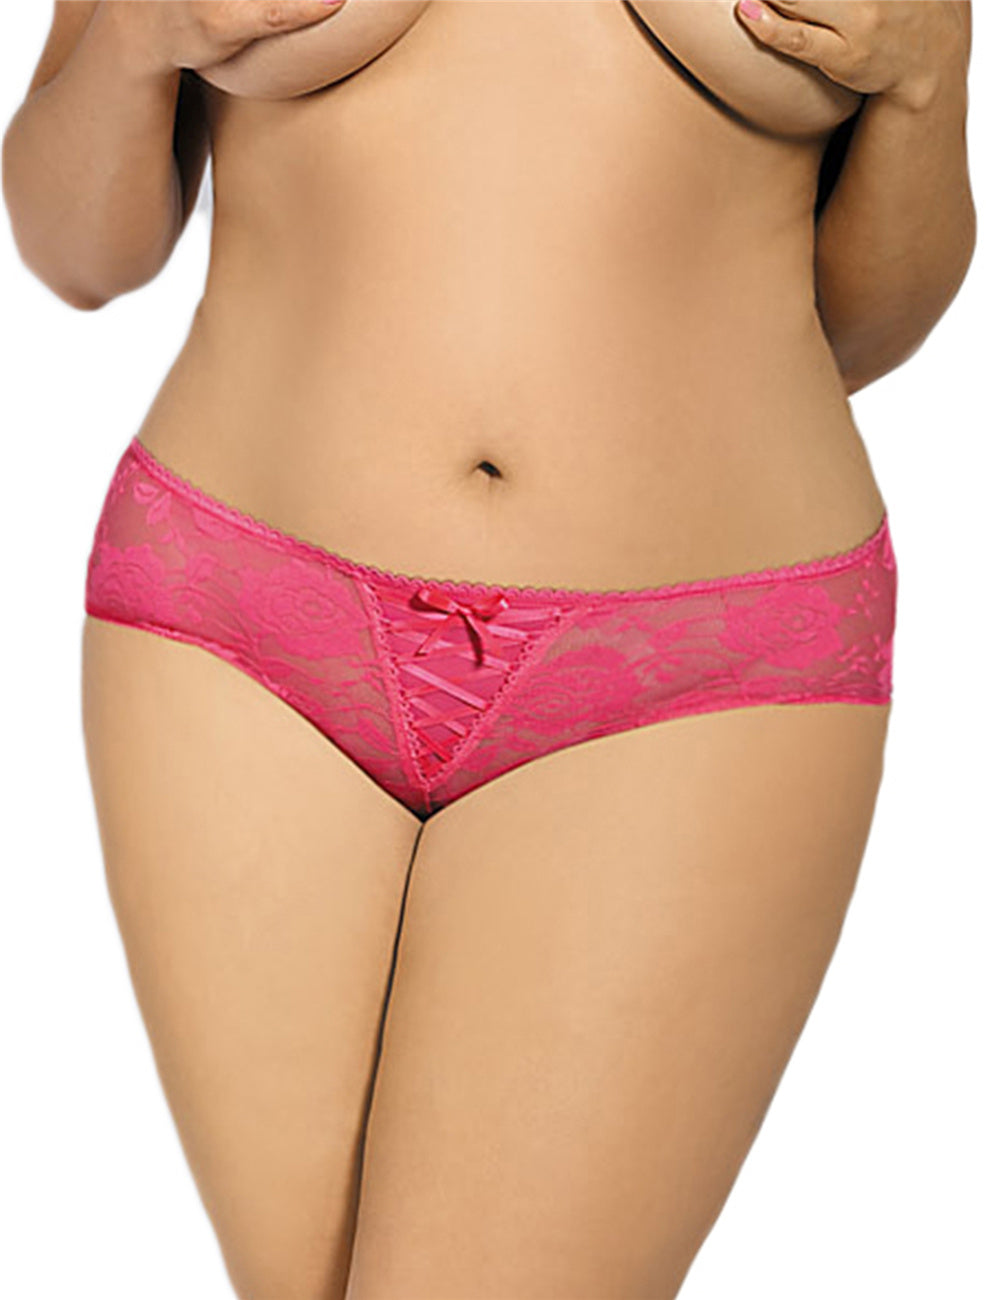 Plus Size Floral Lace Pink Strappy Open Crotch Panty